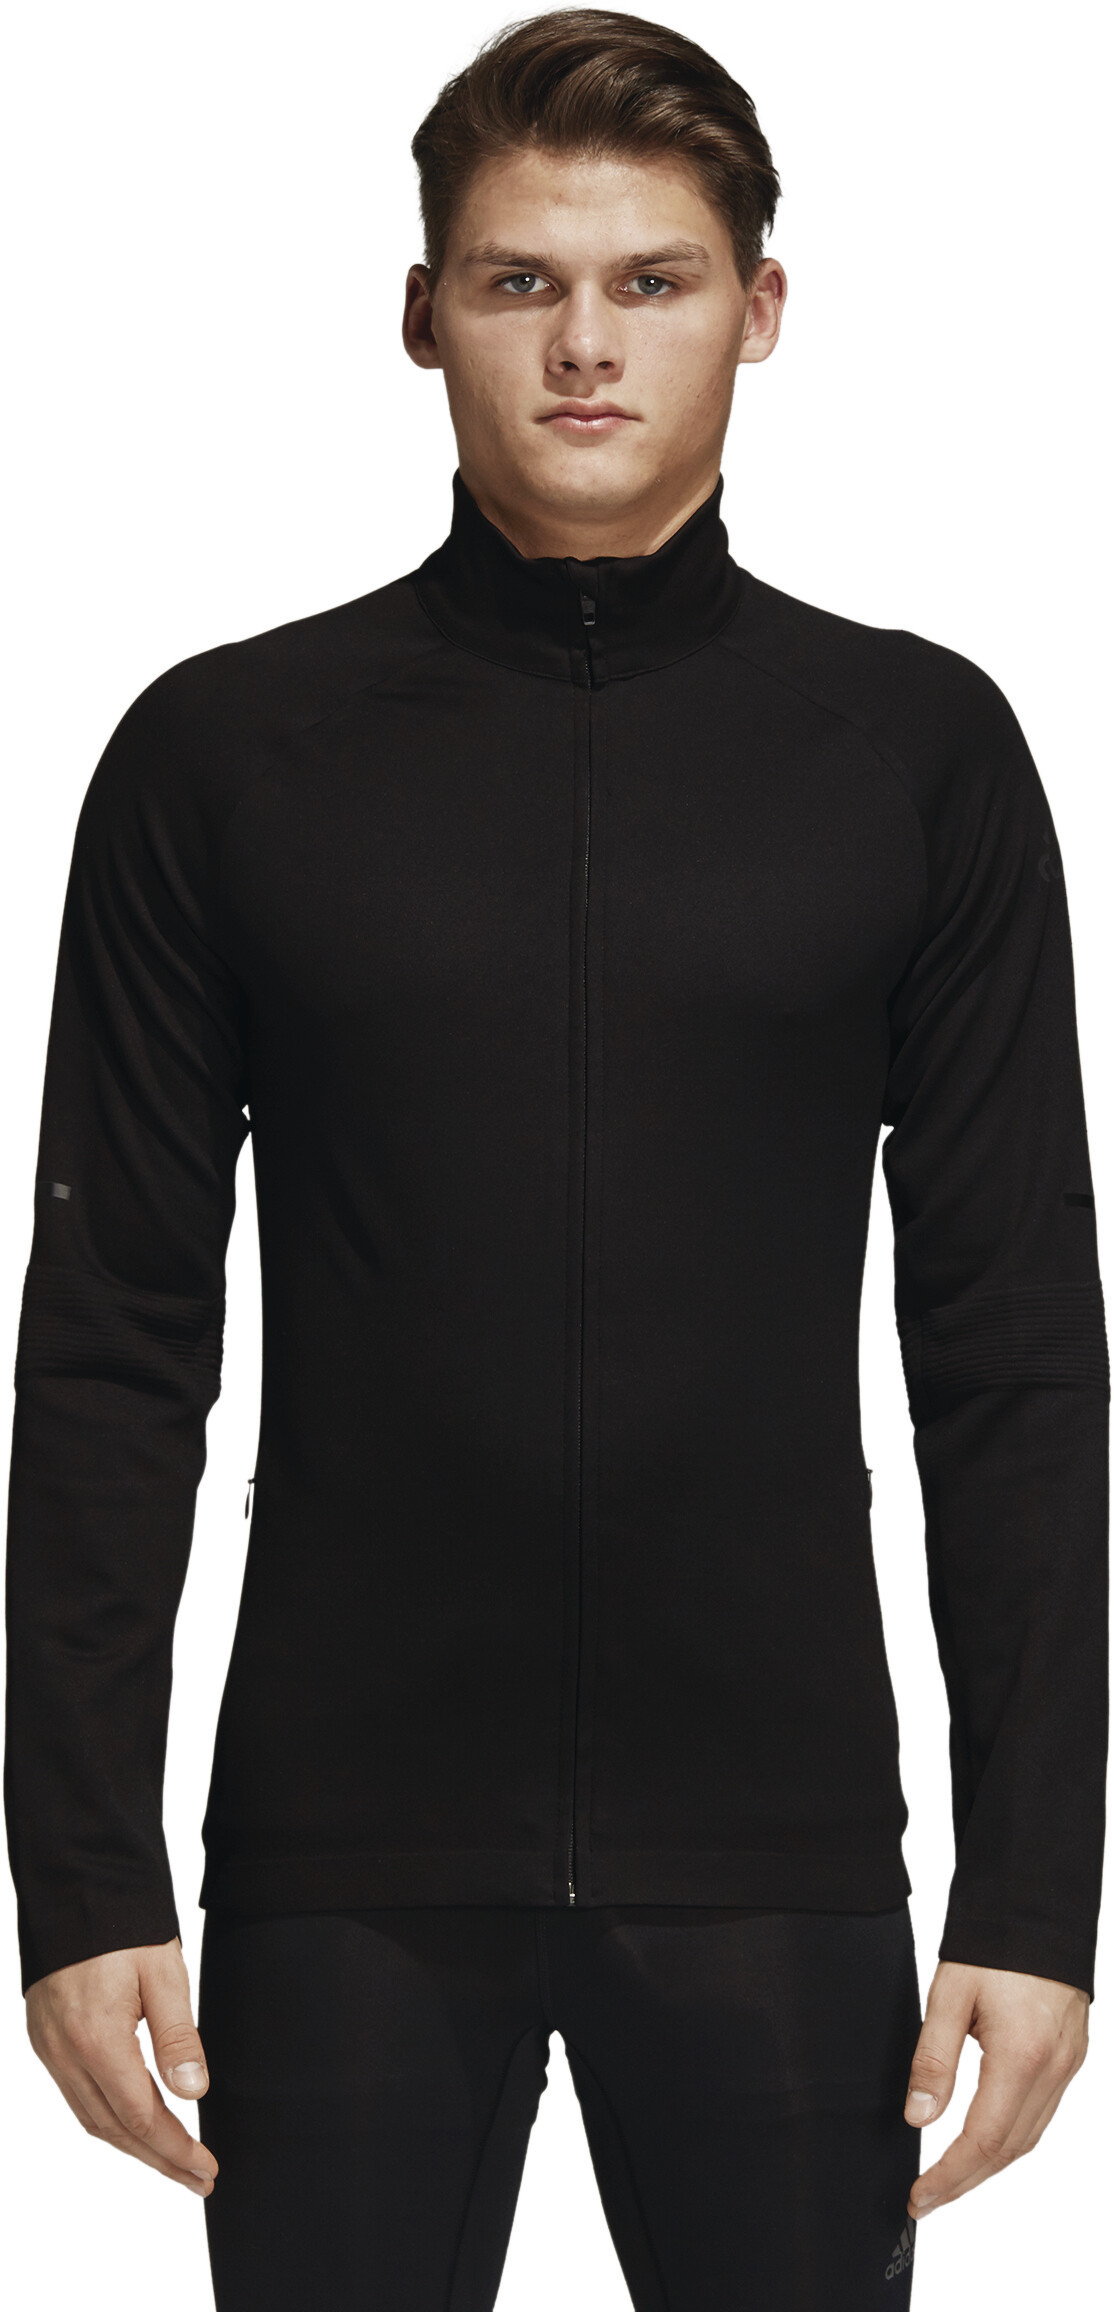 buy online c8c36 84a35 adidas PHX Running Jacket Men black